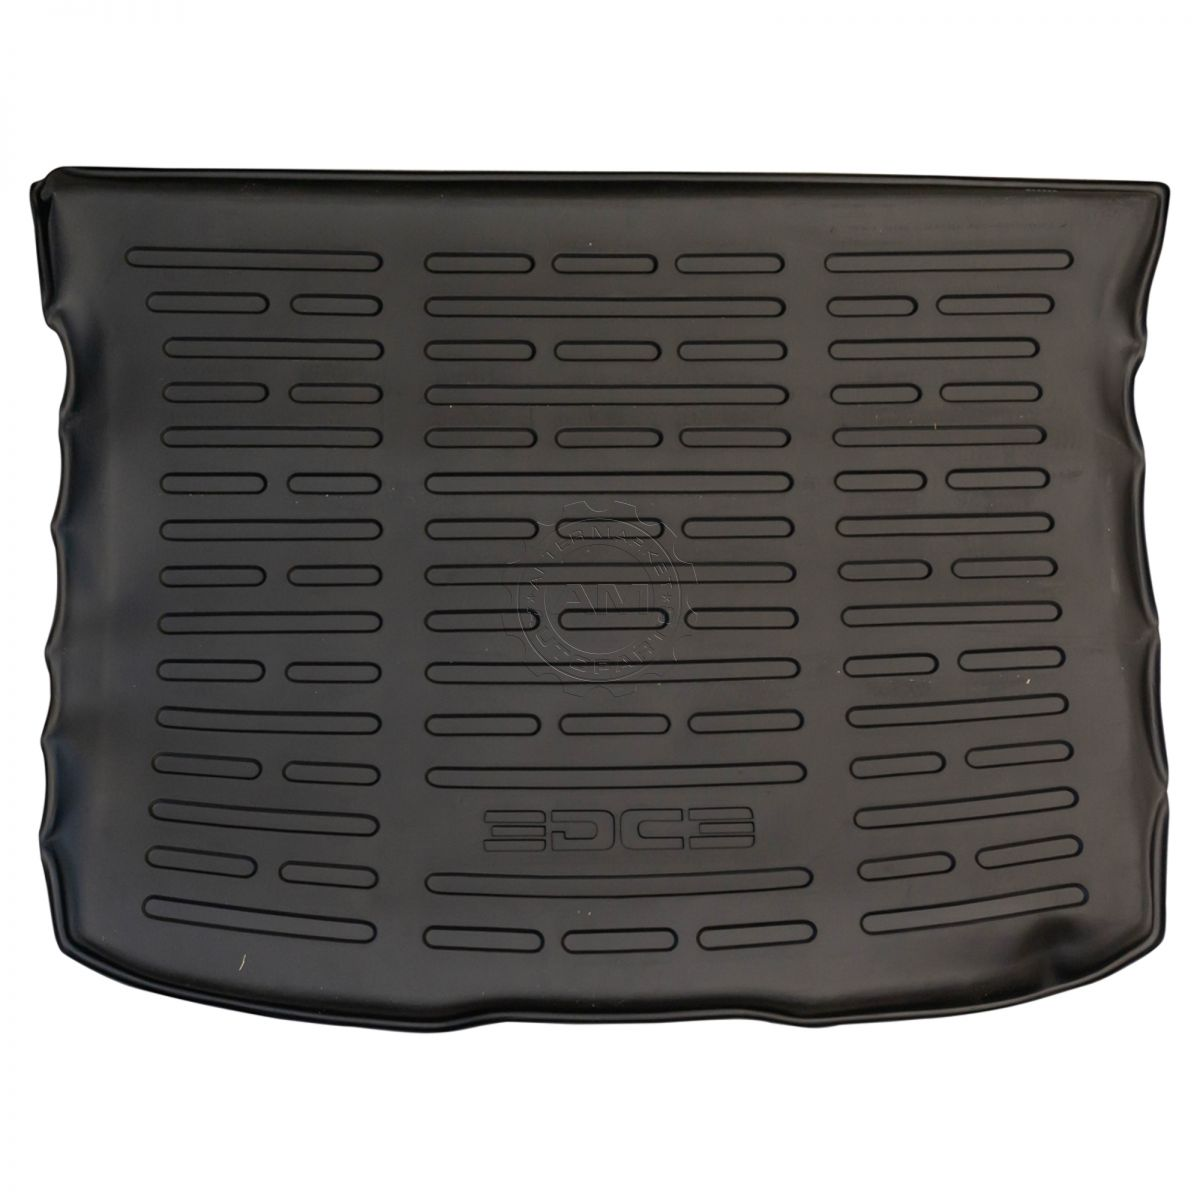 OEM Cargo Area Protector Mat Liner Molded Rubber Black for 11-14 Ford Edge  New